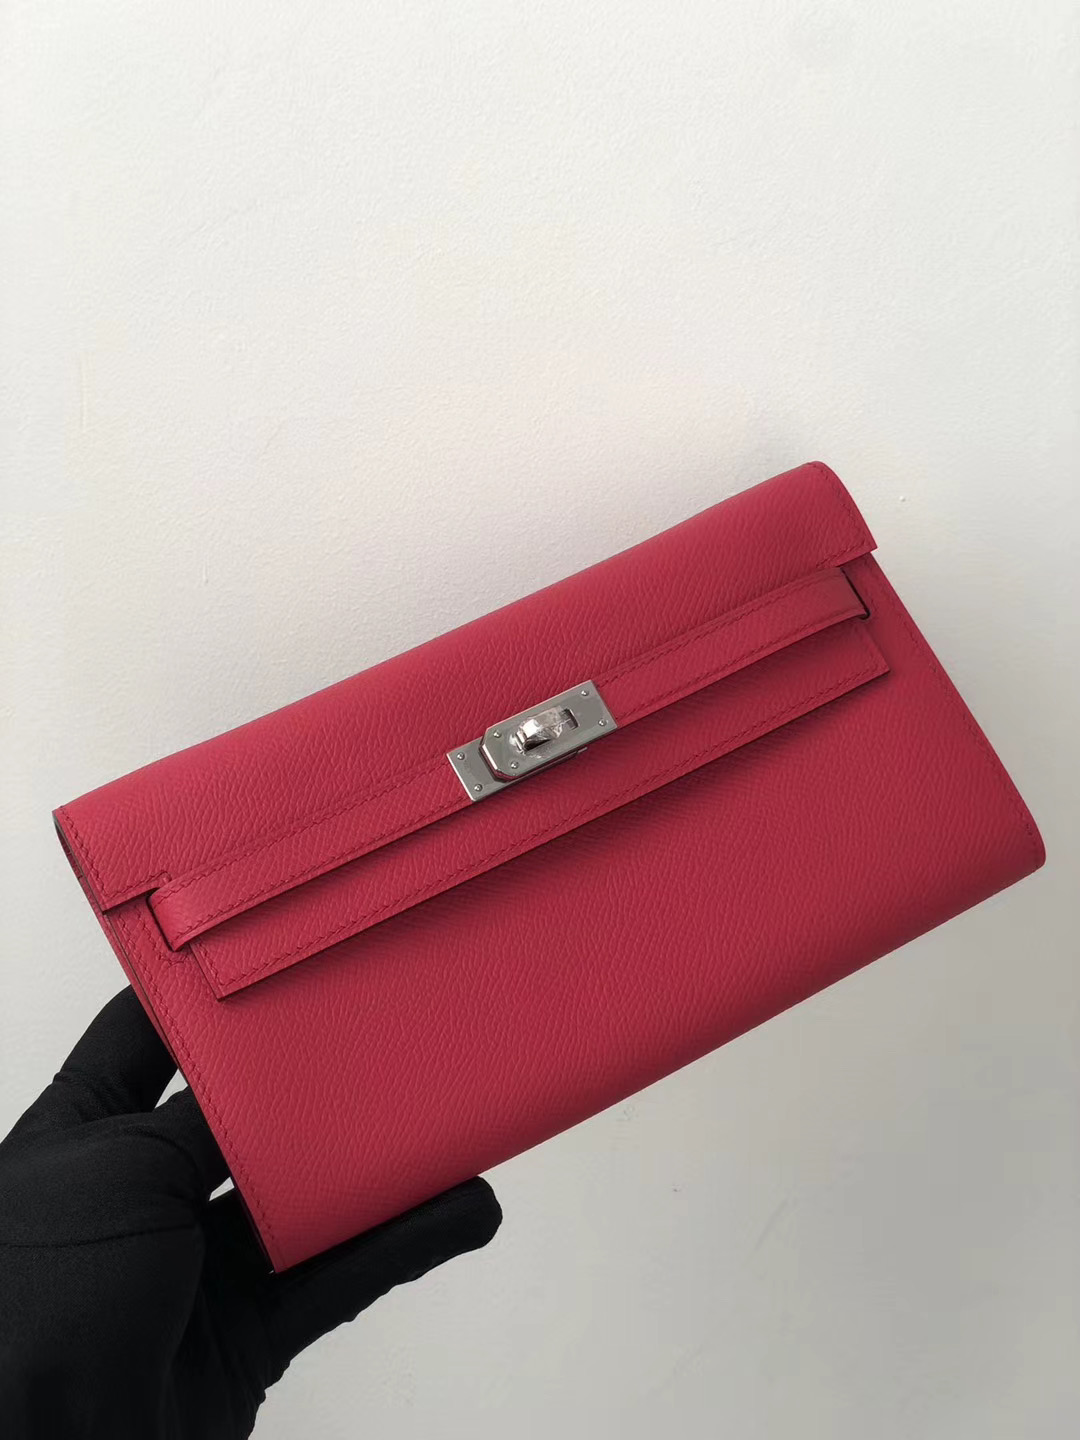 Hermes Portefeuille Kelly Classique To Go Epsom i6 rose extreme 極致粉